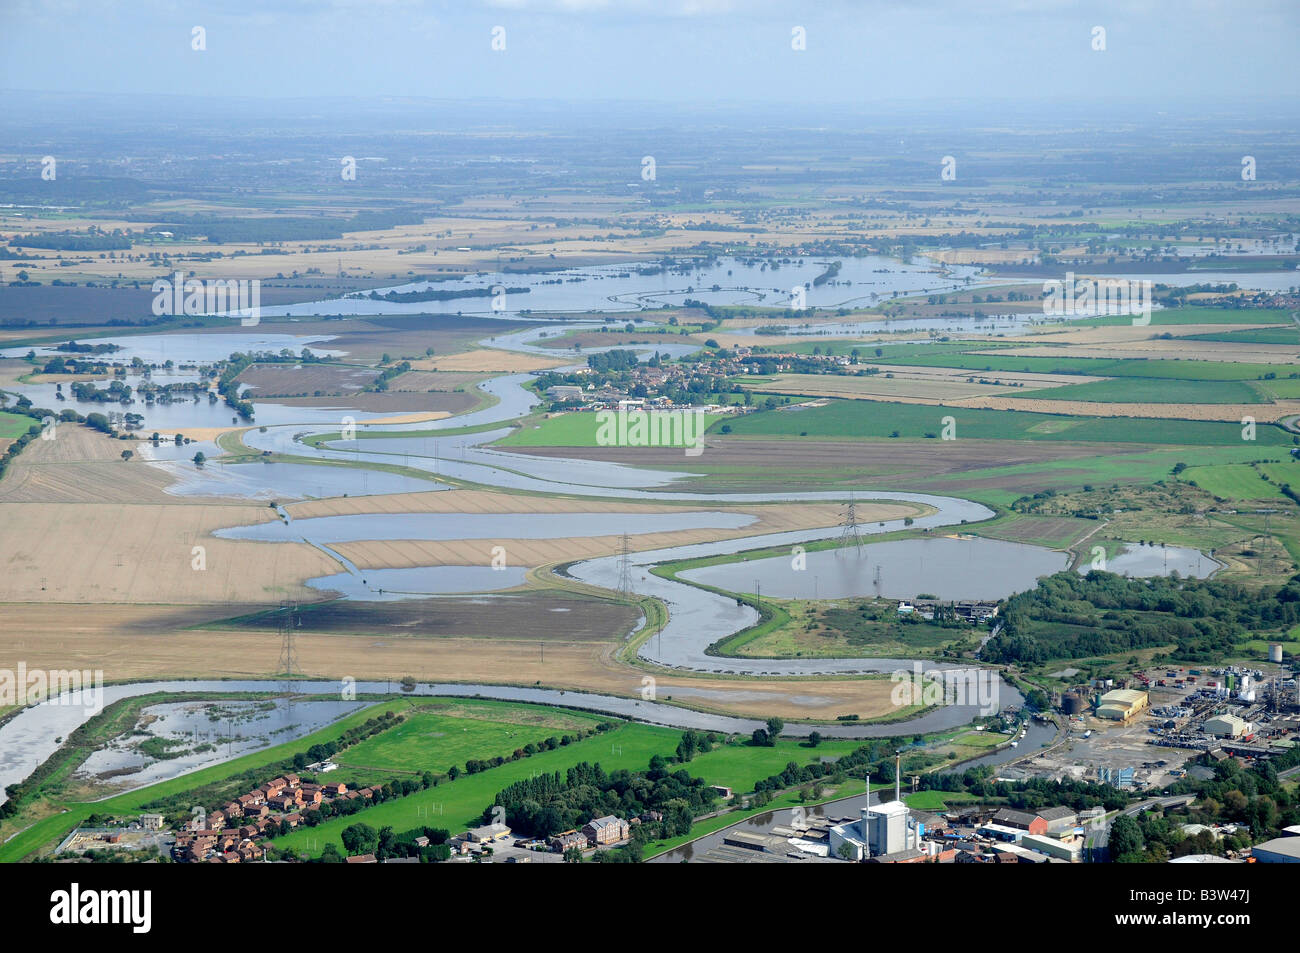 Summer Flooding of the River Aire, Knottingley. West Yorksire, Northern England - Stock Image